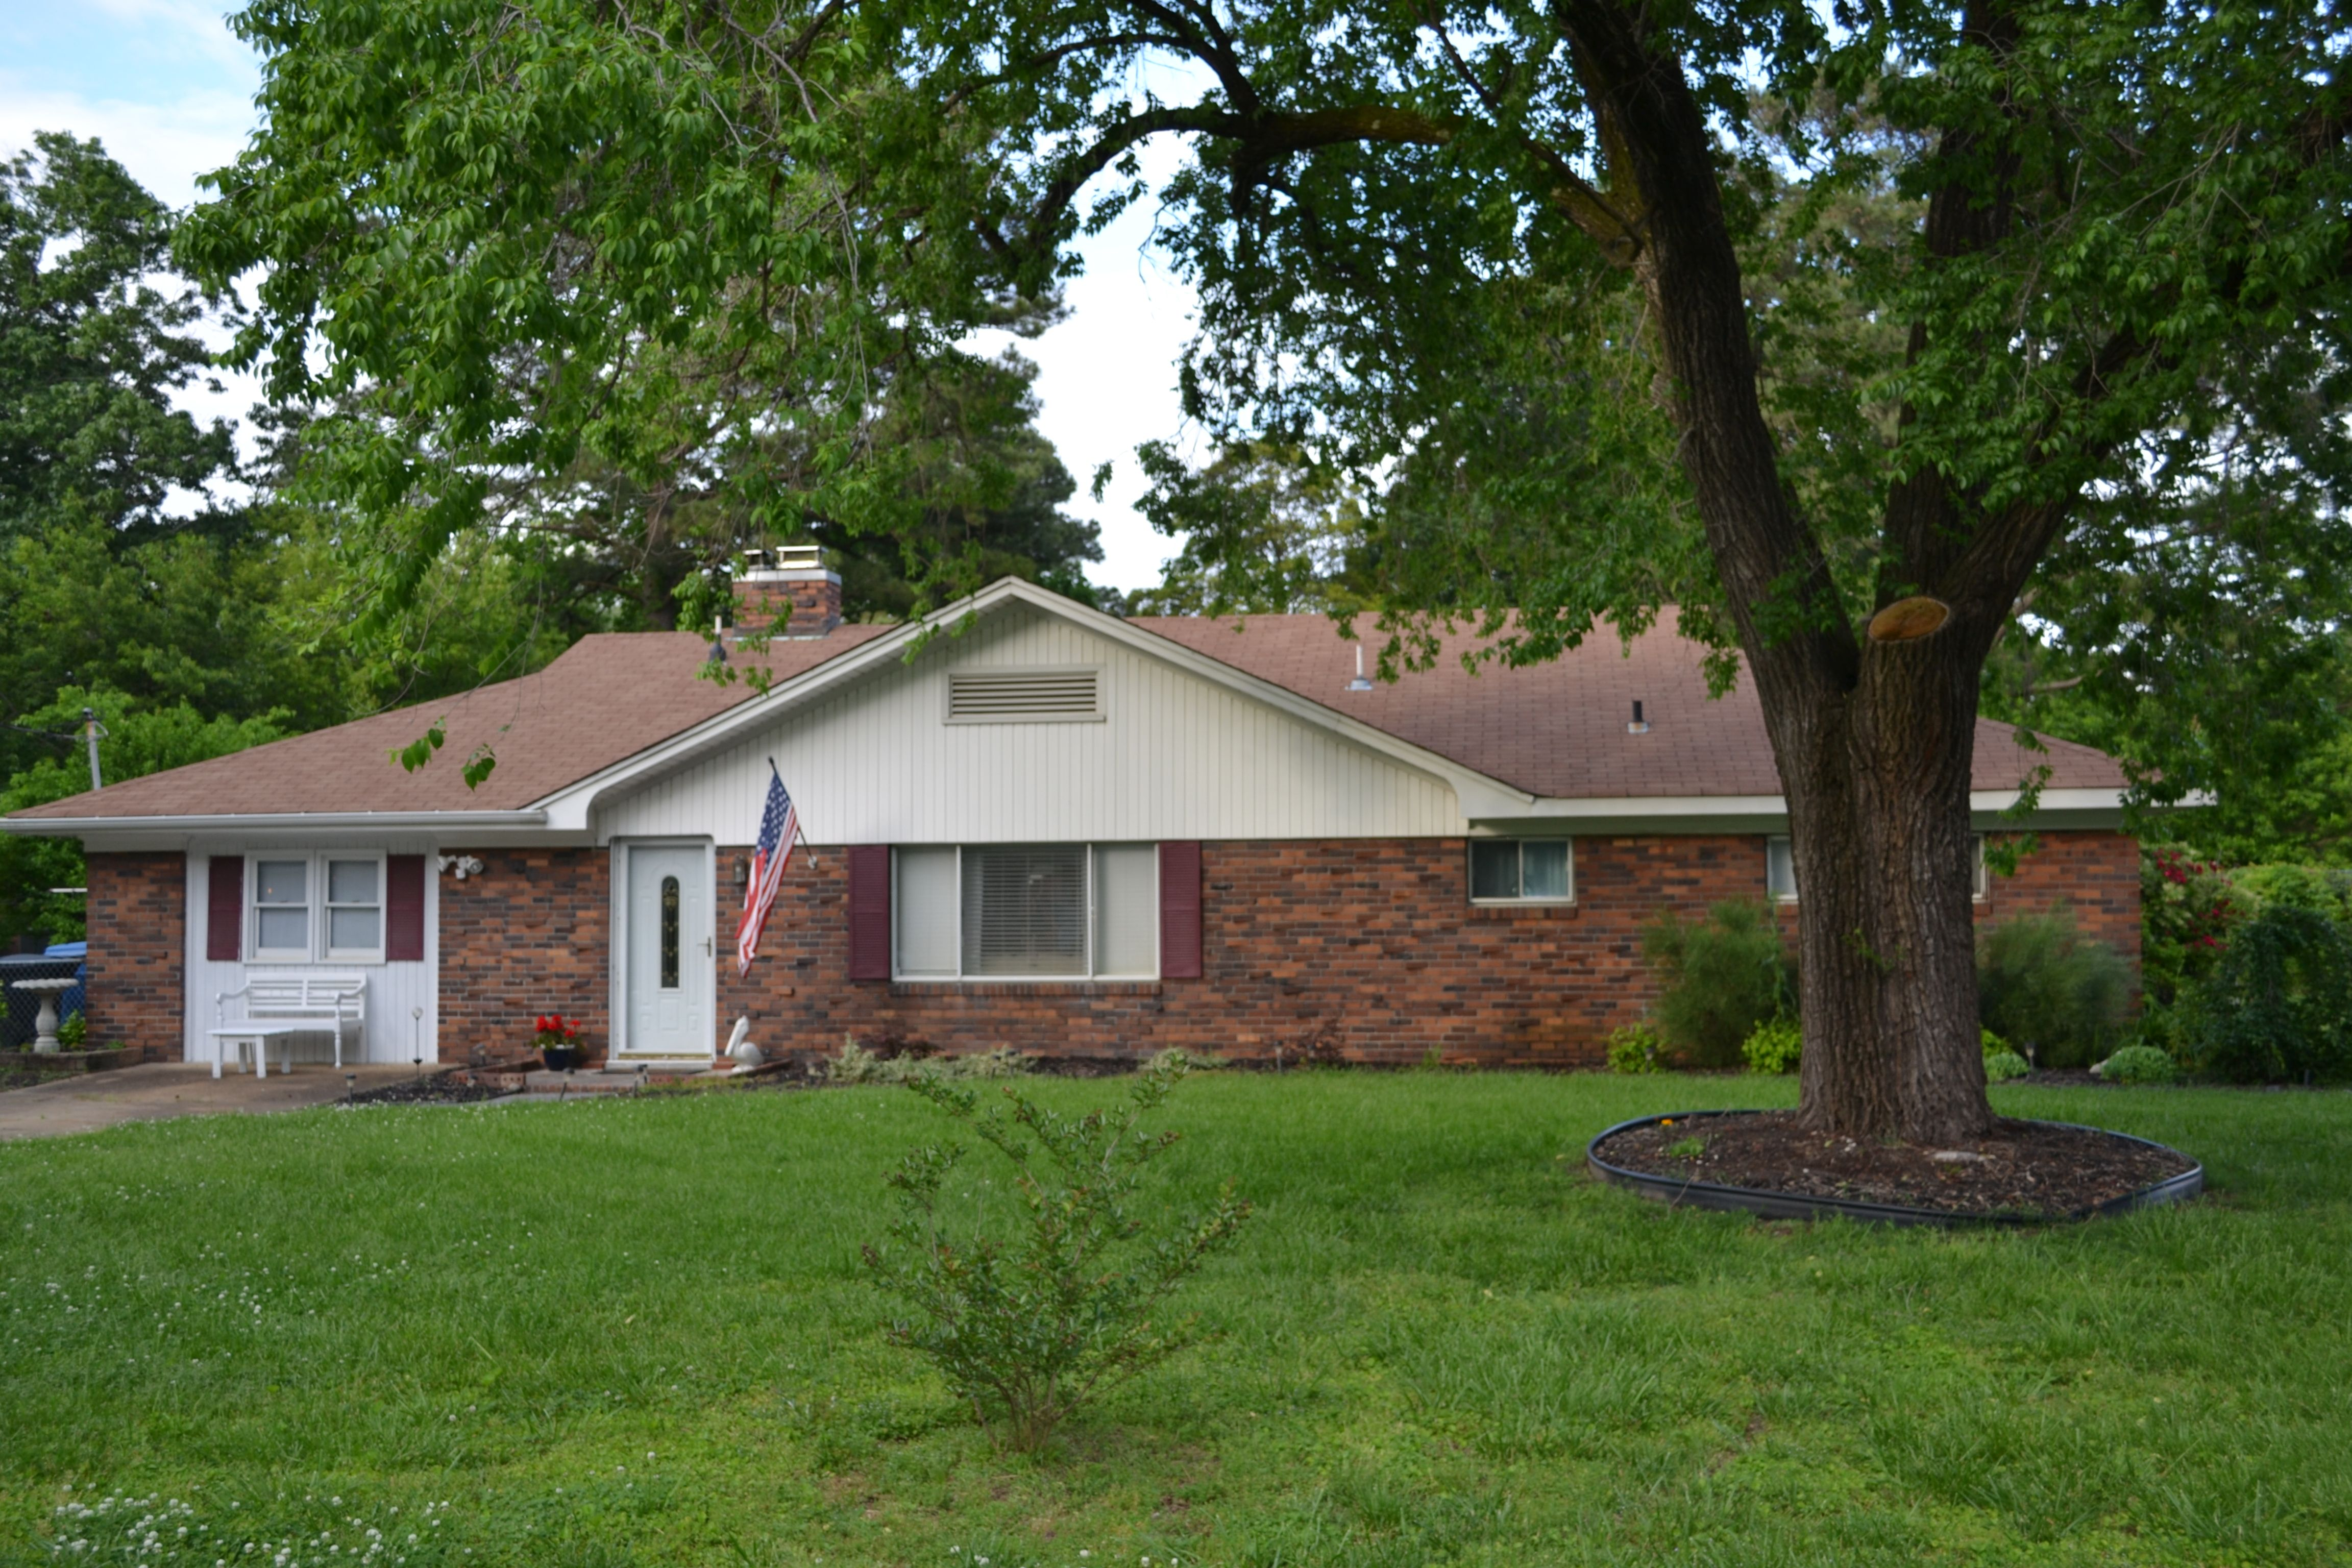 Brick ranch on 3/4 acre in Lake Shores for sale!